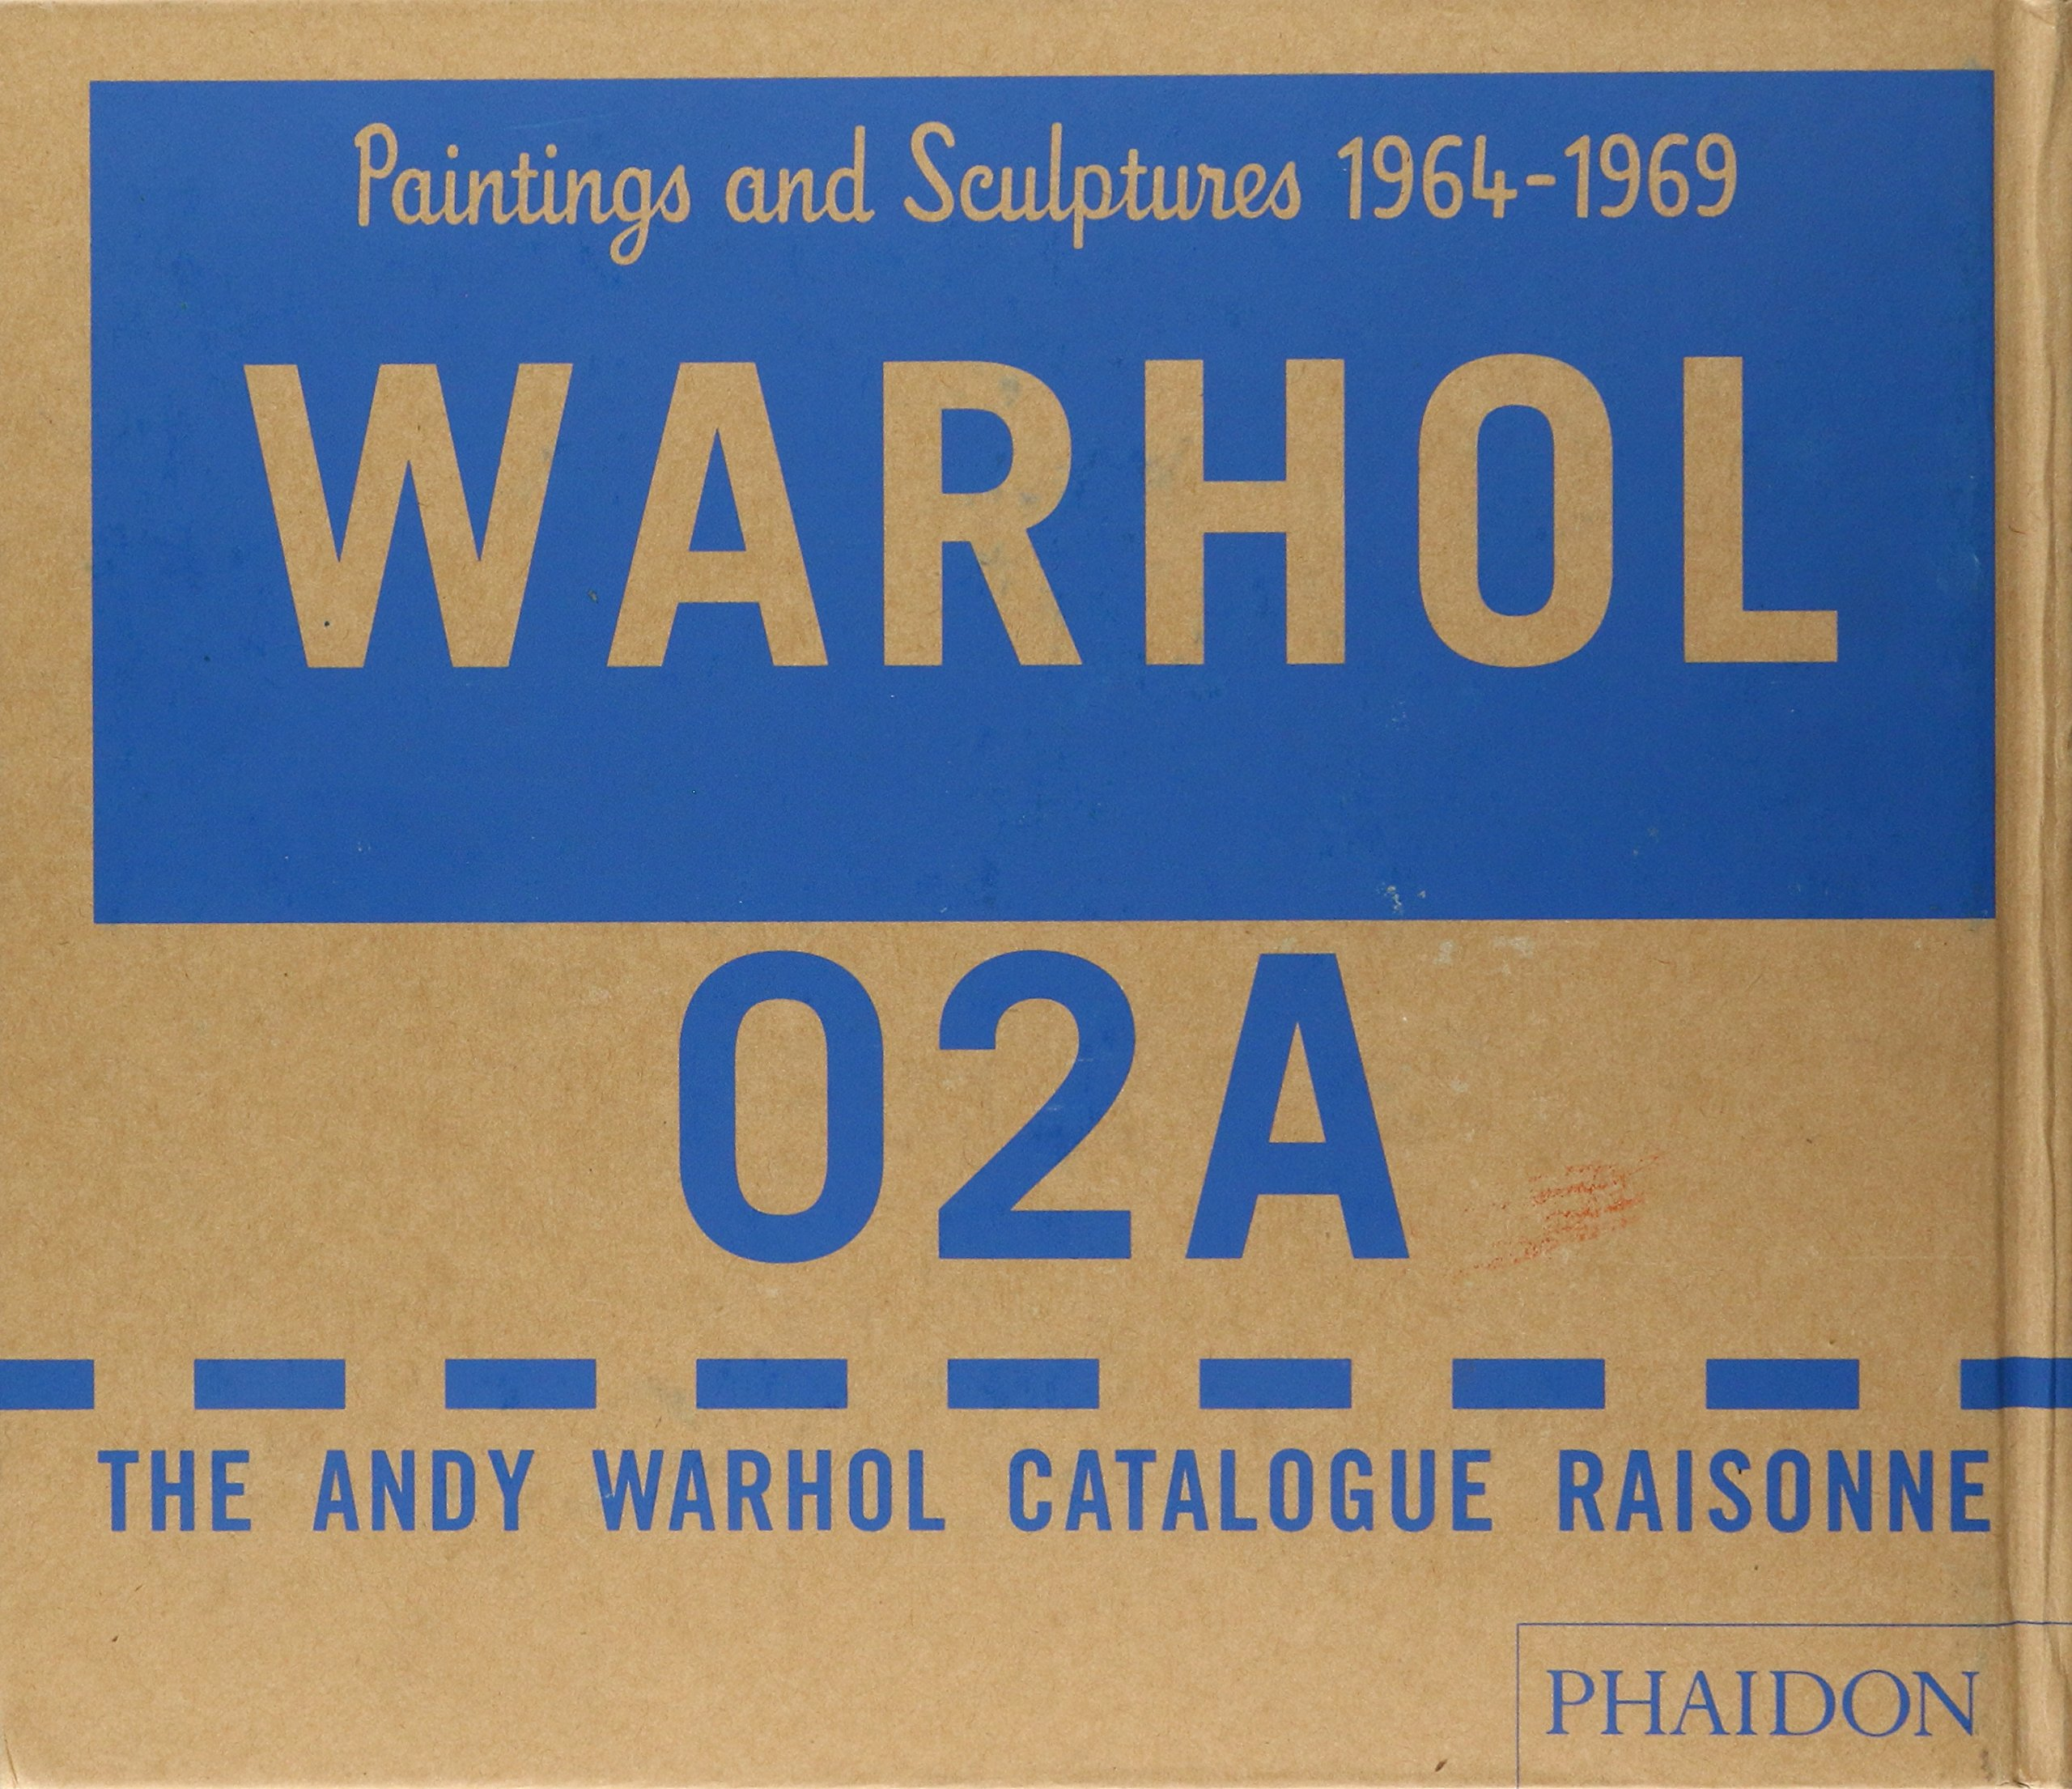 warhol paintings and sculpture 1964 1969 vol 2 2 vol set the andy warhol catalogue raisonne